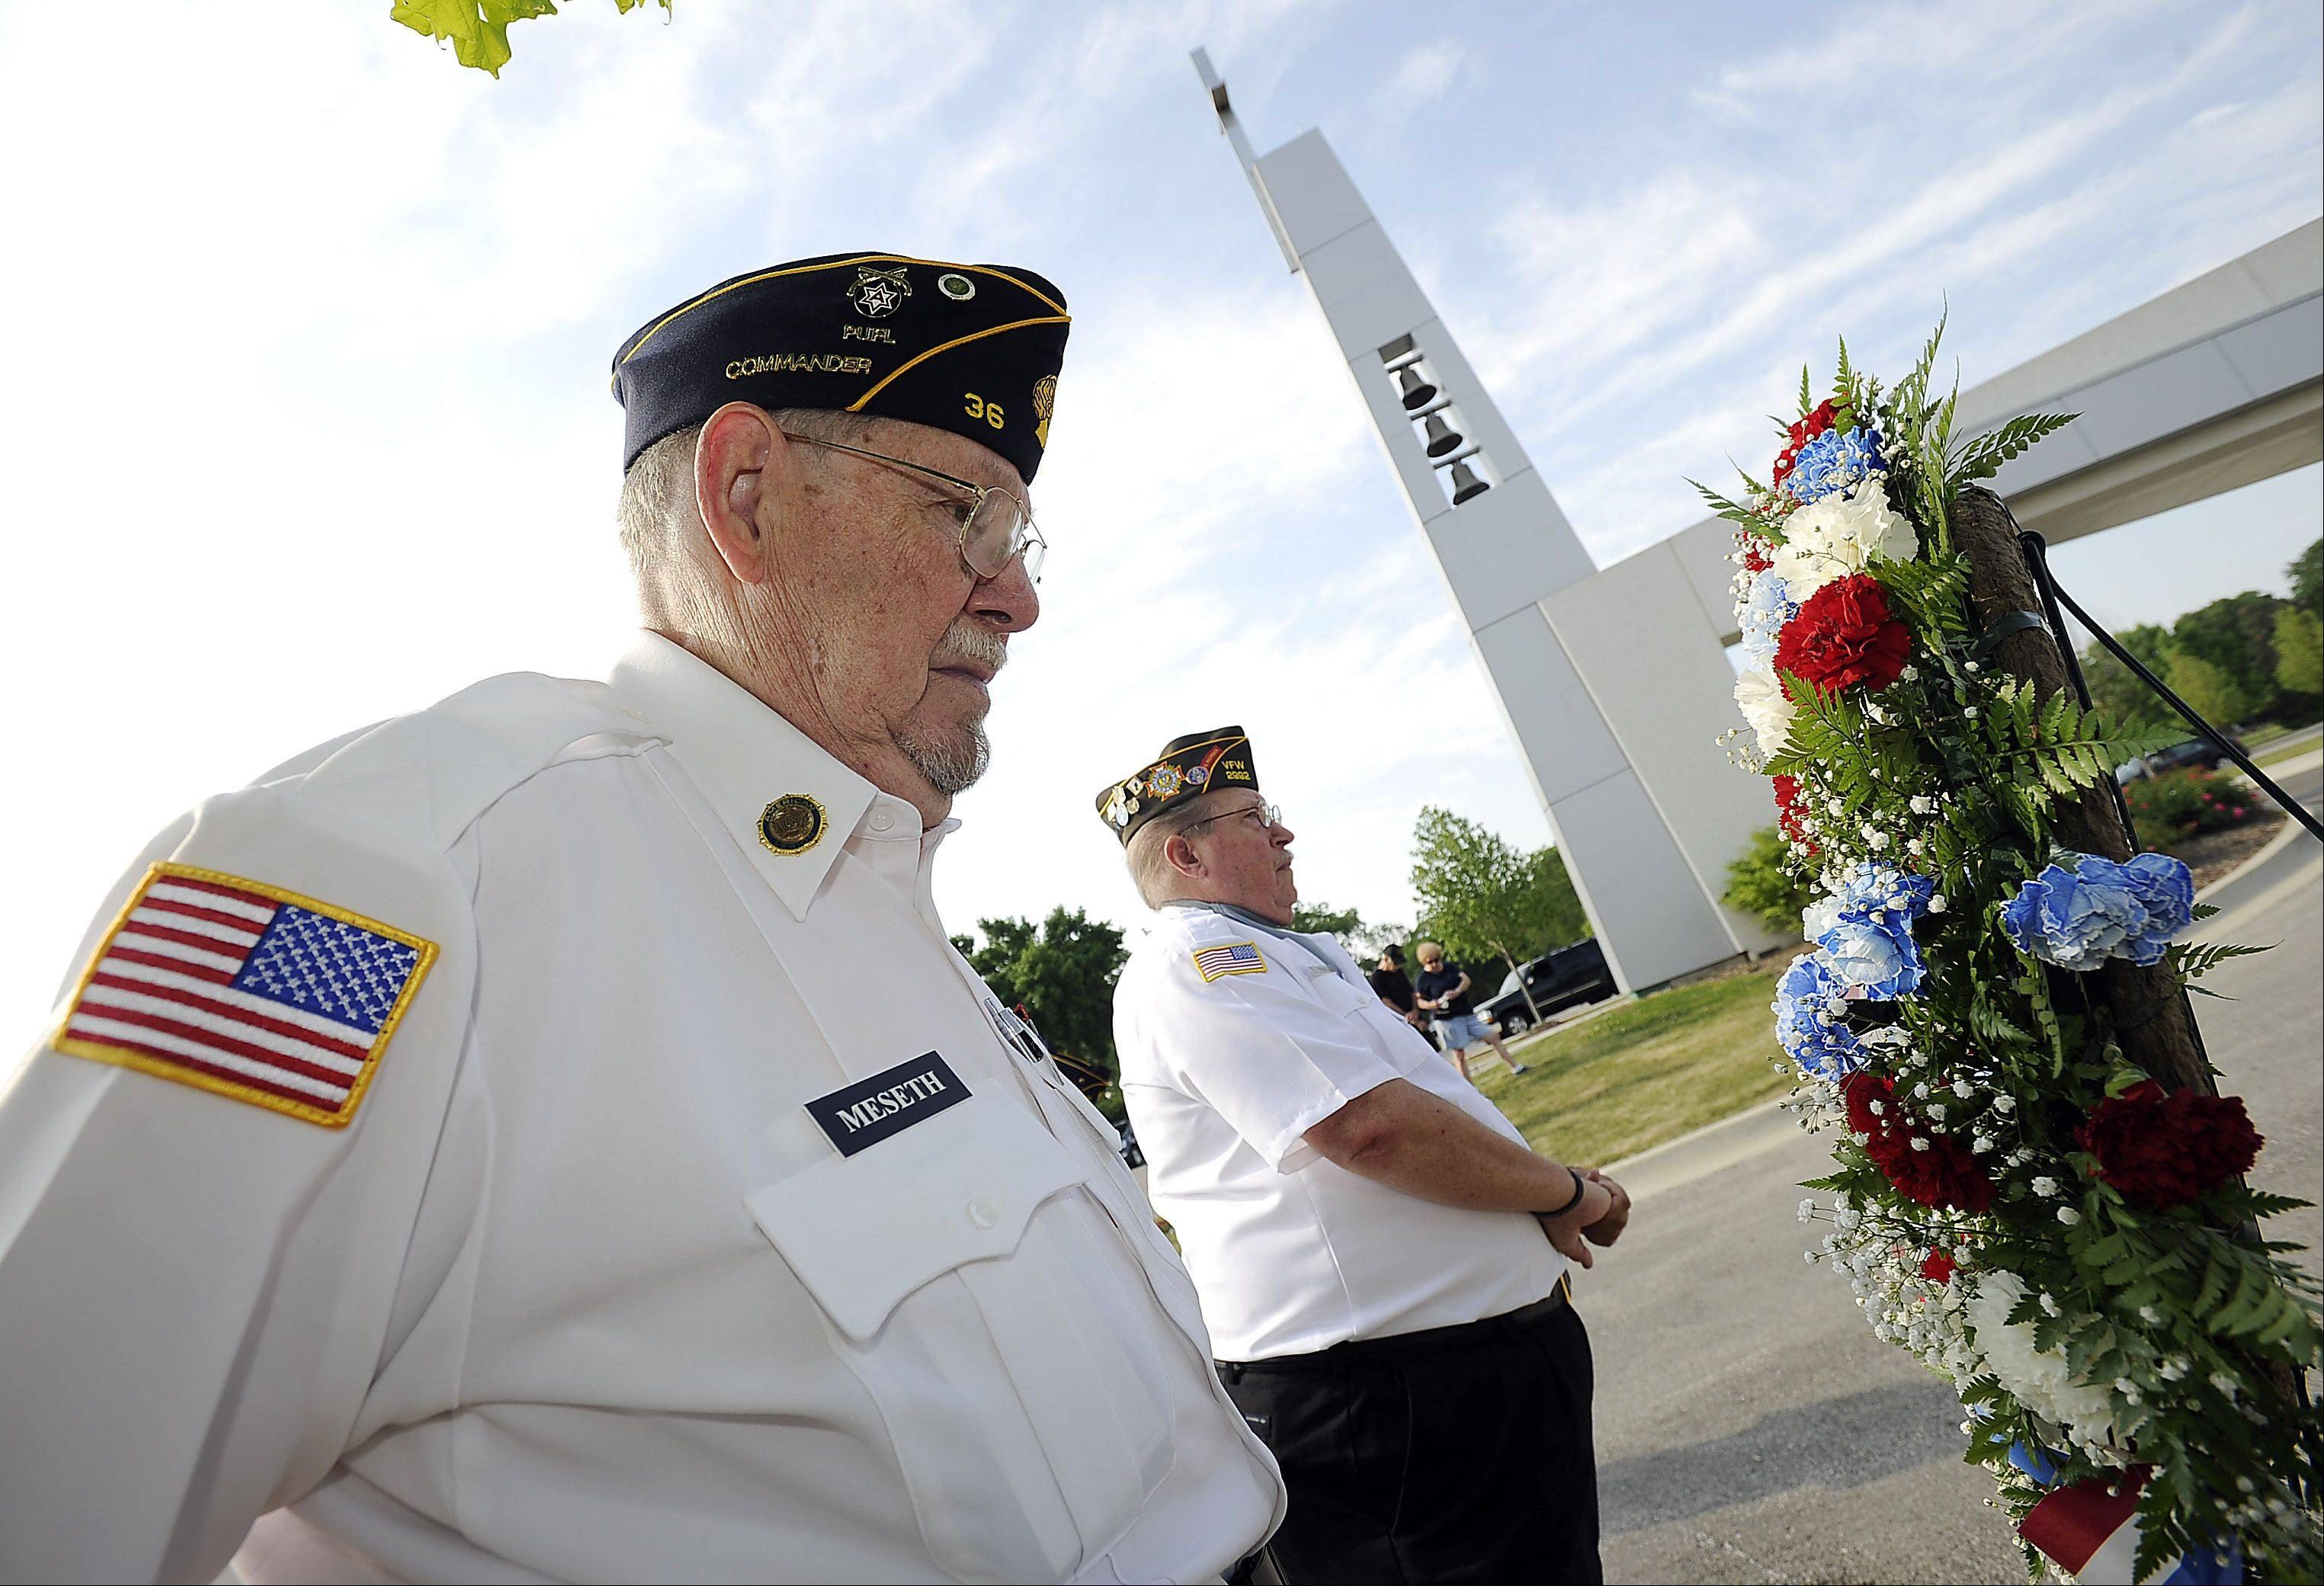 VFW 2992 Commander Willain Fiegel, right, along with Officer Don Meseth of American Legion Post 36 prepare to lay a wreath at the Memorial Day ceremony at All Saints Cemetery in Des Plaines on Monday.